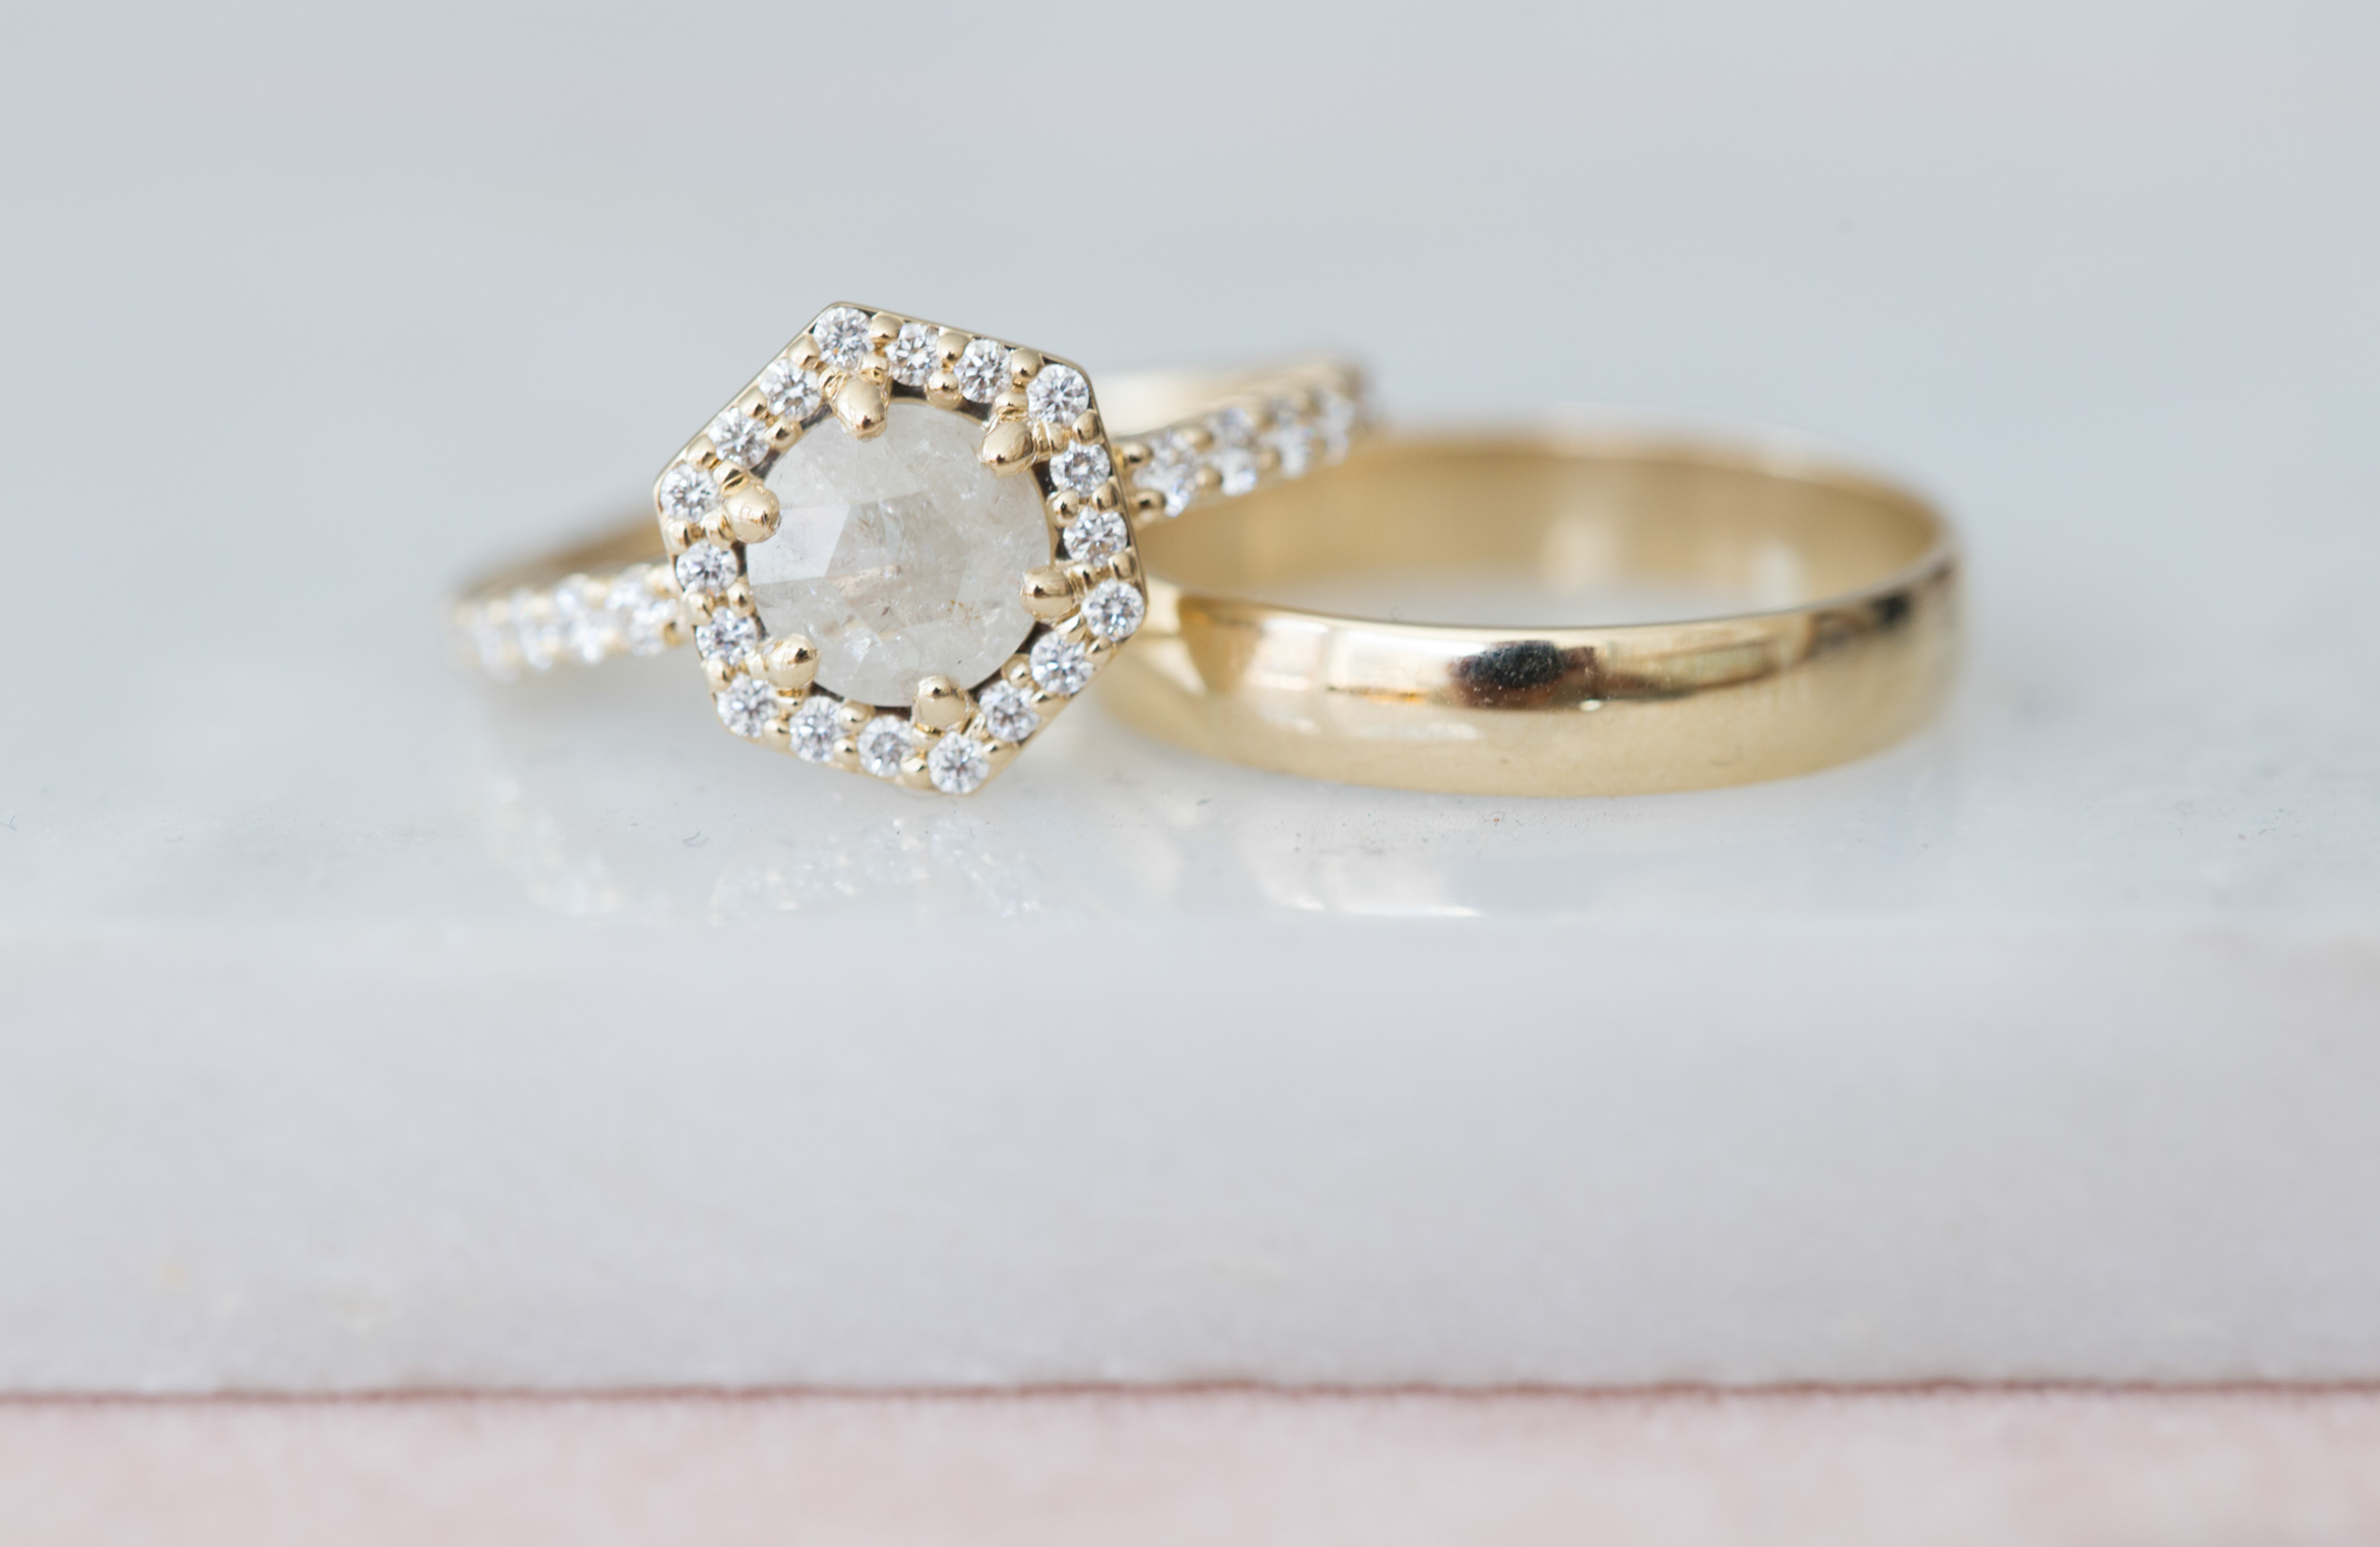 Kerry S. Hexagon Ring-1.jpg